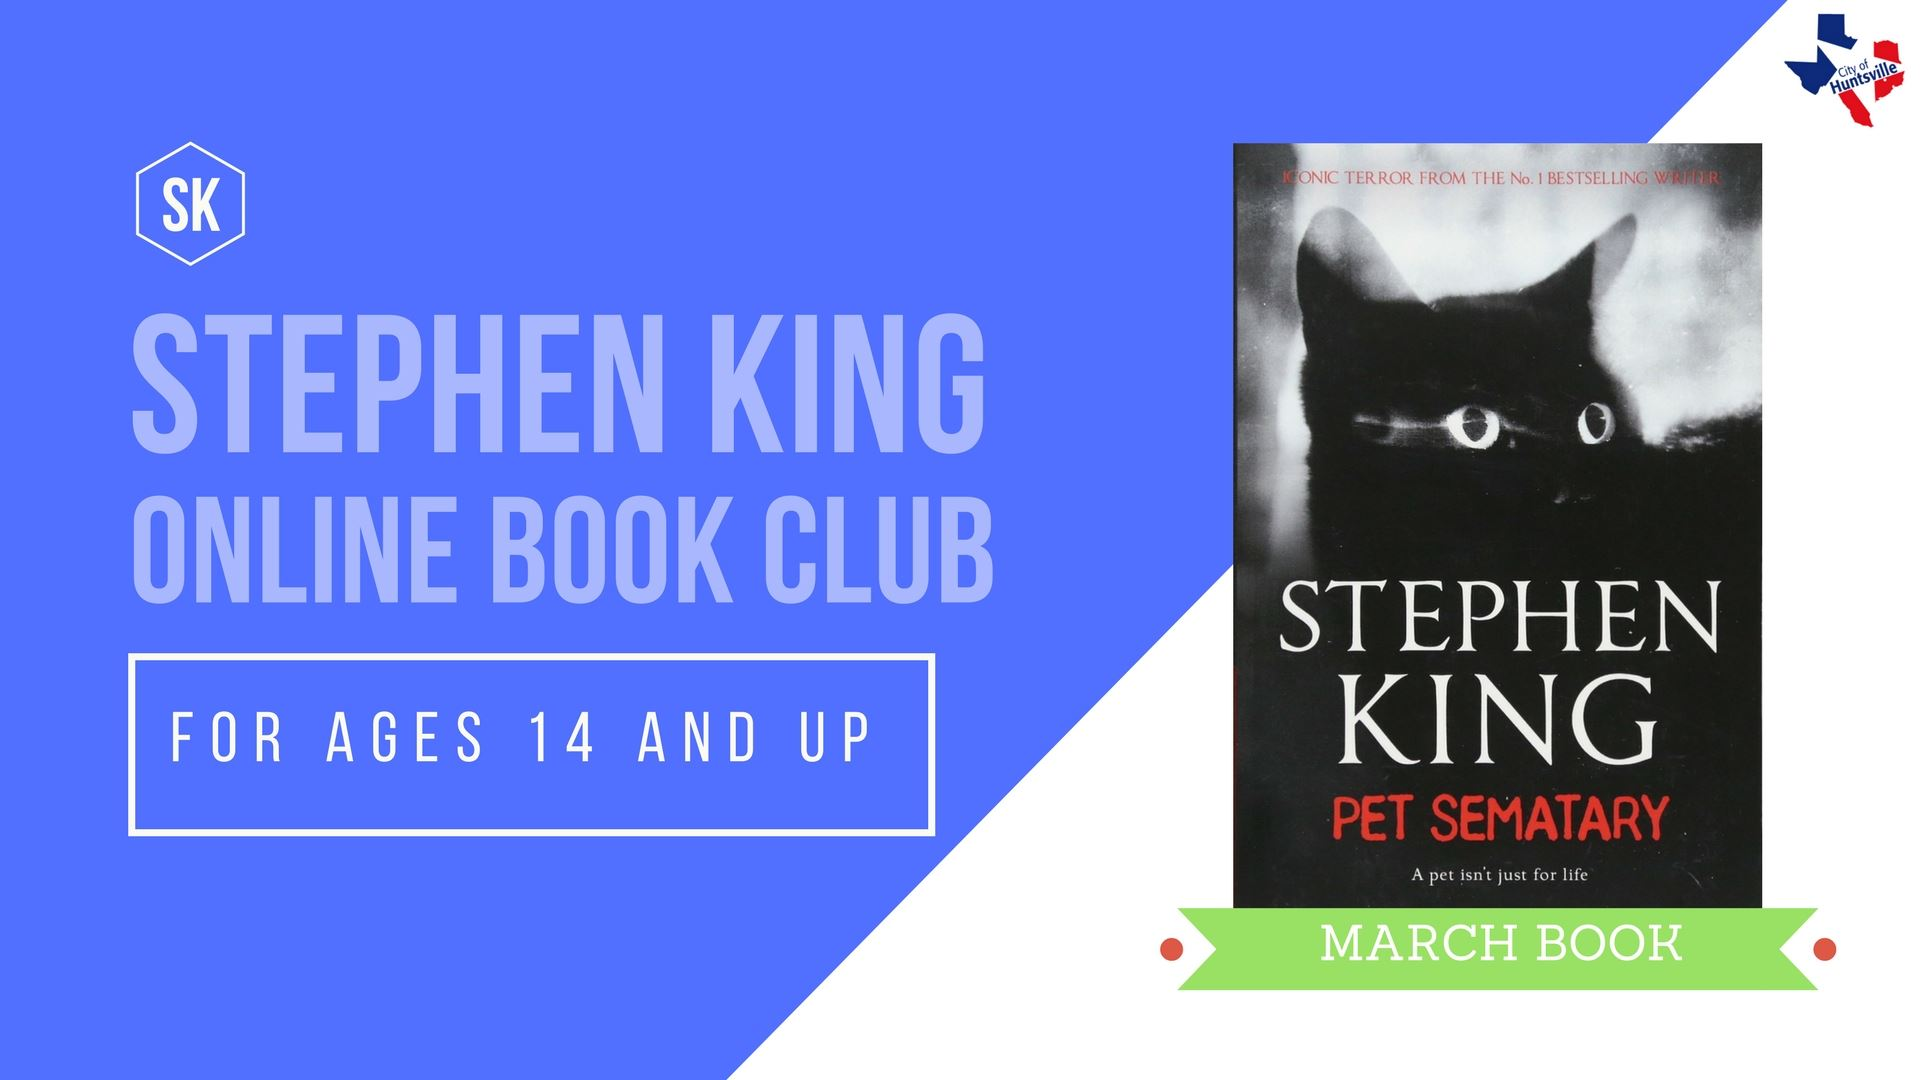 STEPHEN KING MARCH